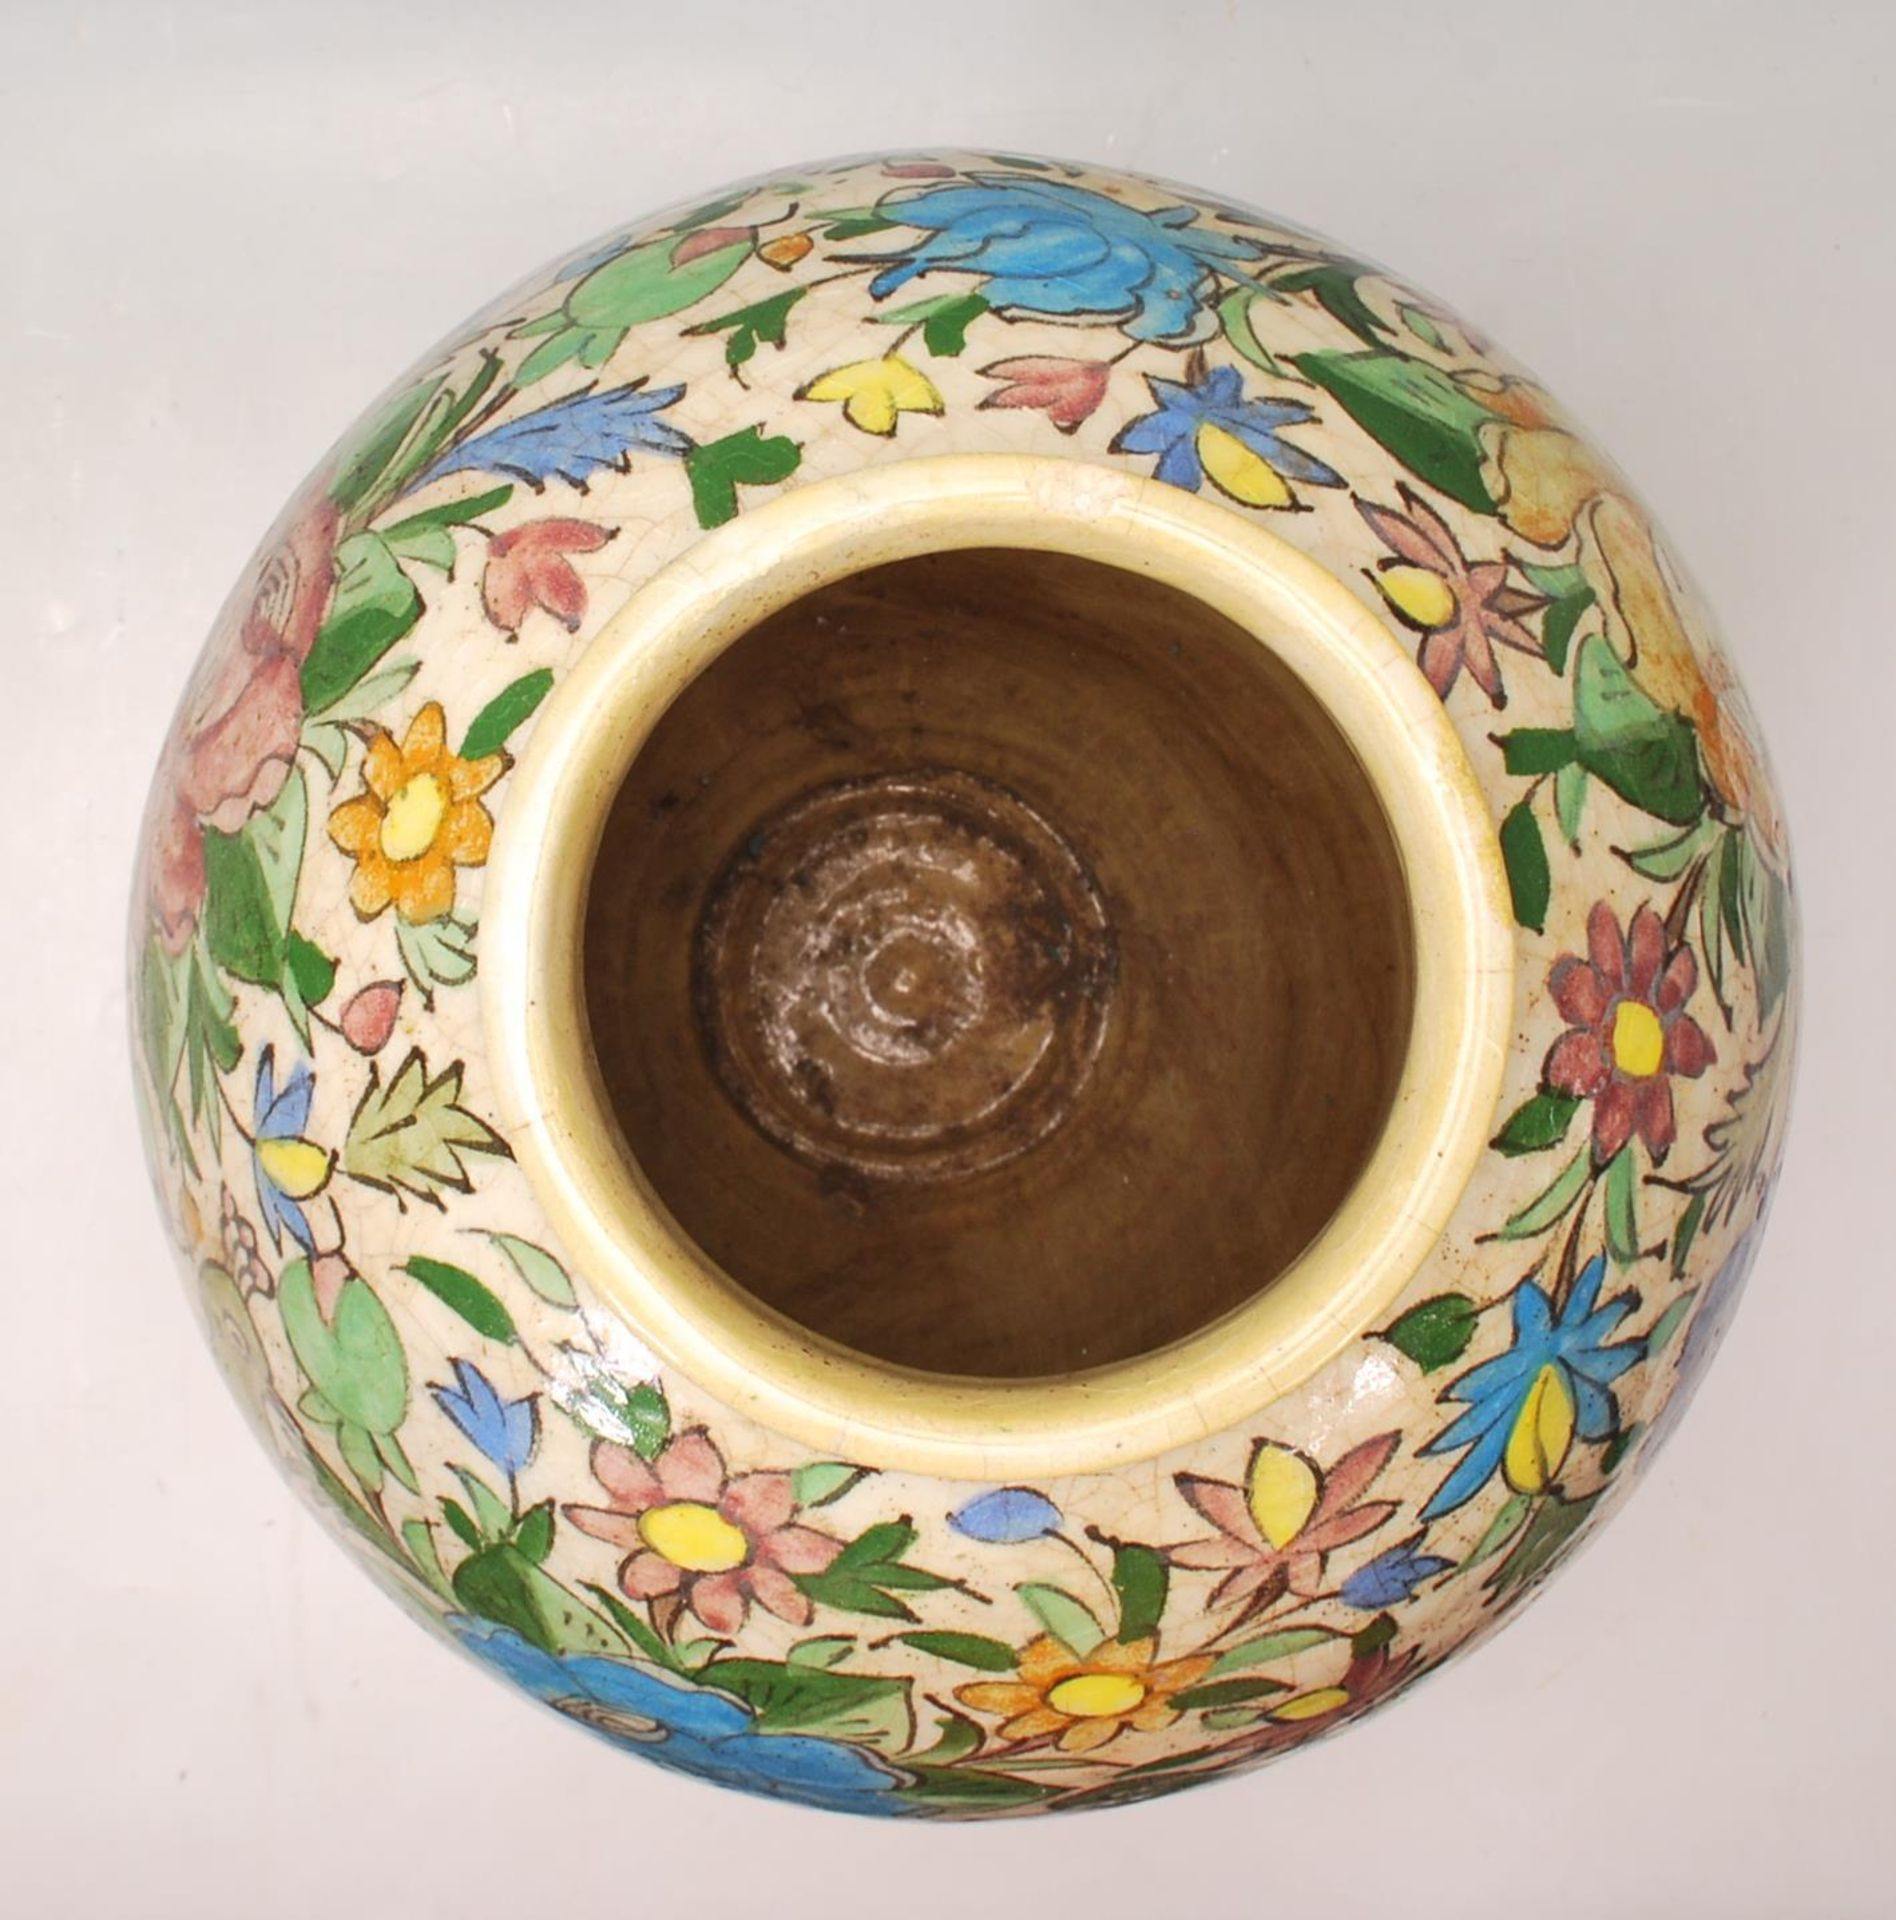 LATE 20TH CENTURY PERSIAN ISLAMIC VASE WITH POLYCHROME DECORATION - Image 6 of 7